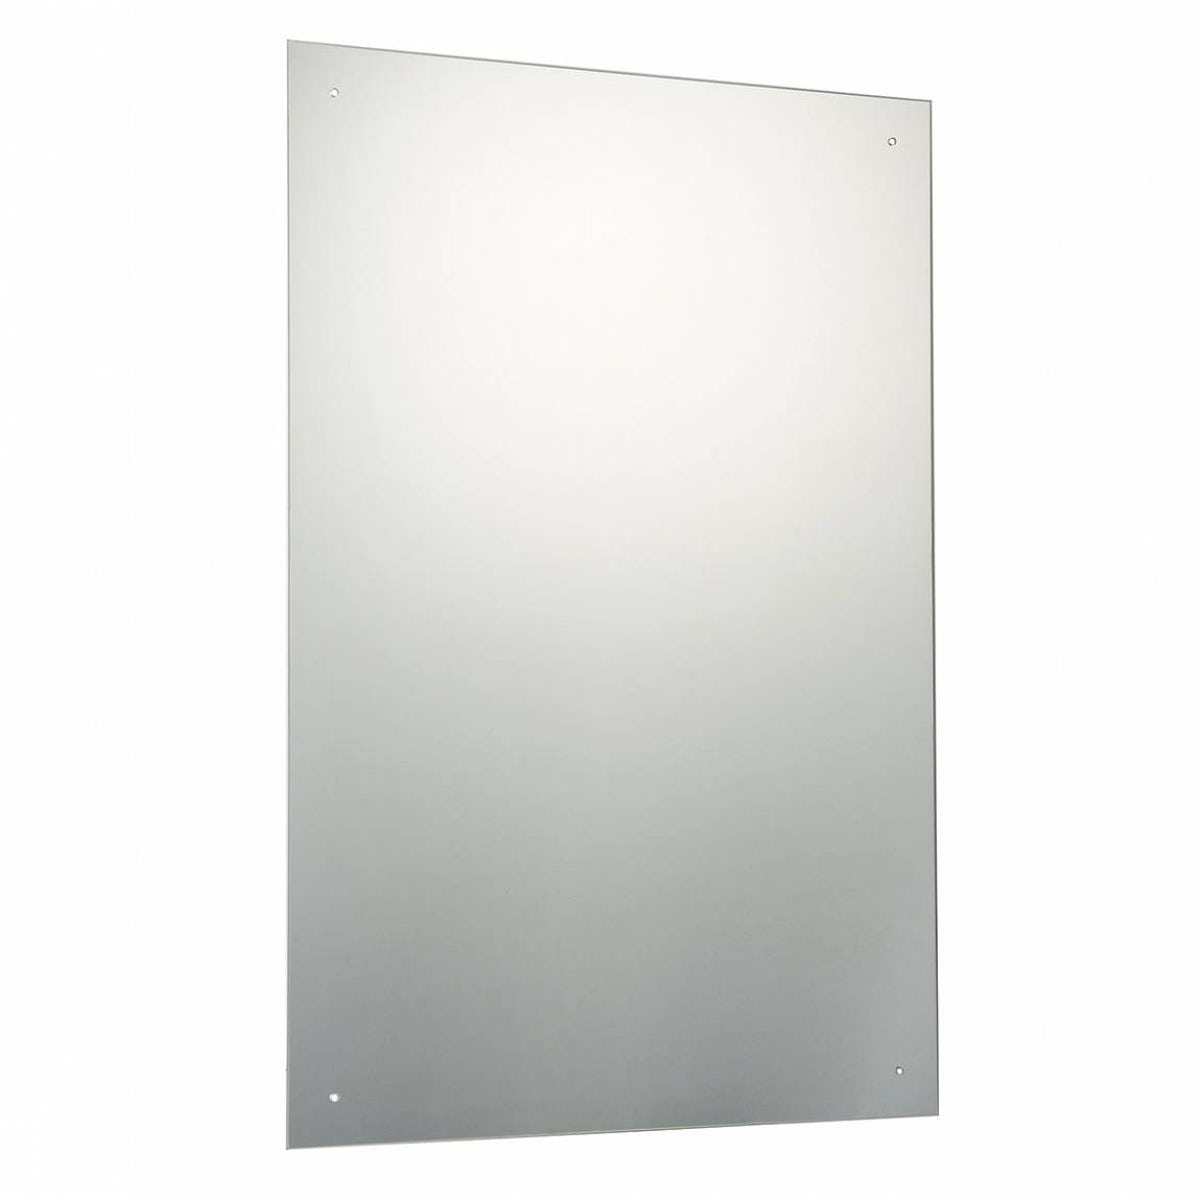 Orchard rectangular bevelled edge drilled mirror 600 x 900 for Mirror 900 x 600